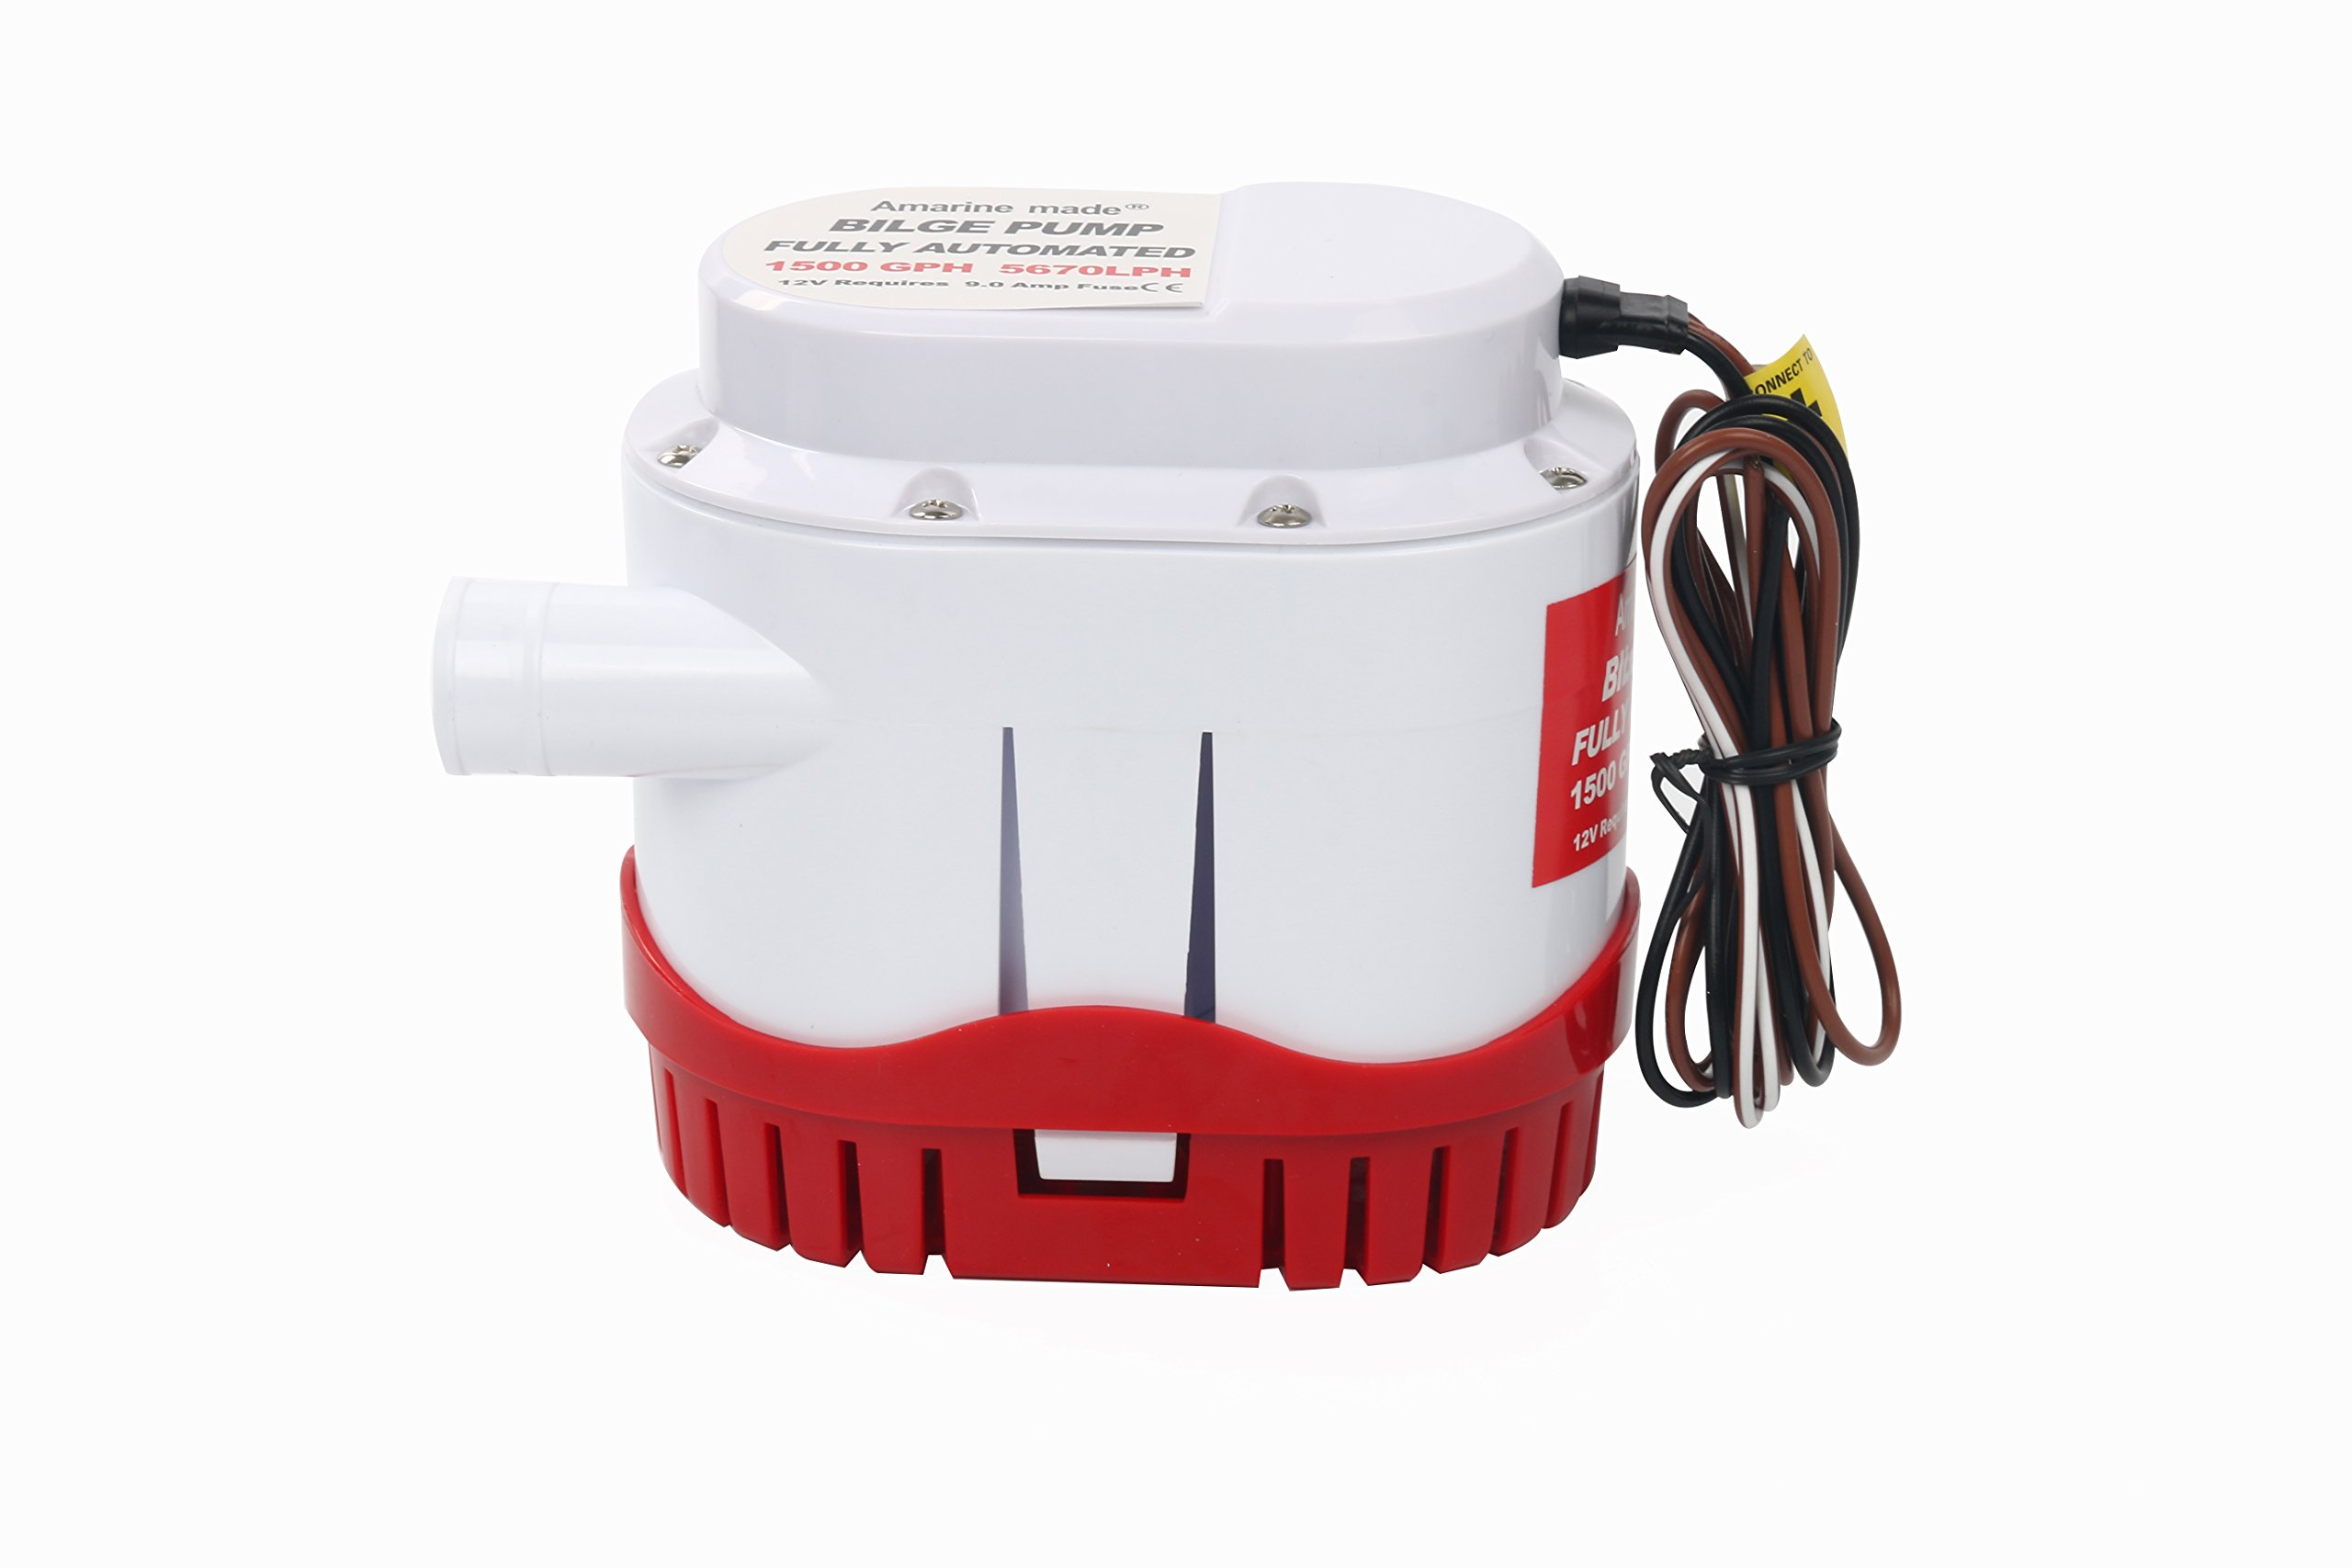 Amarine-made Automatic Submersible Boat Bilge Water Pump 12v 1500gph Auto with Built-in Float Switch